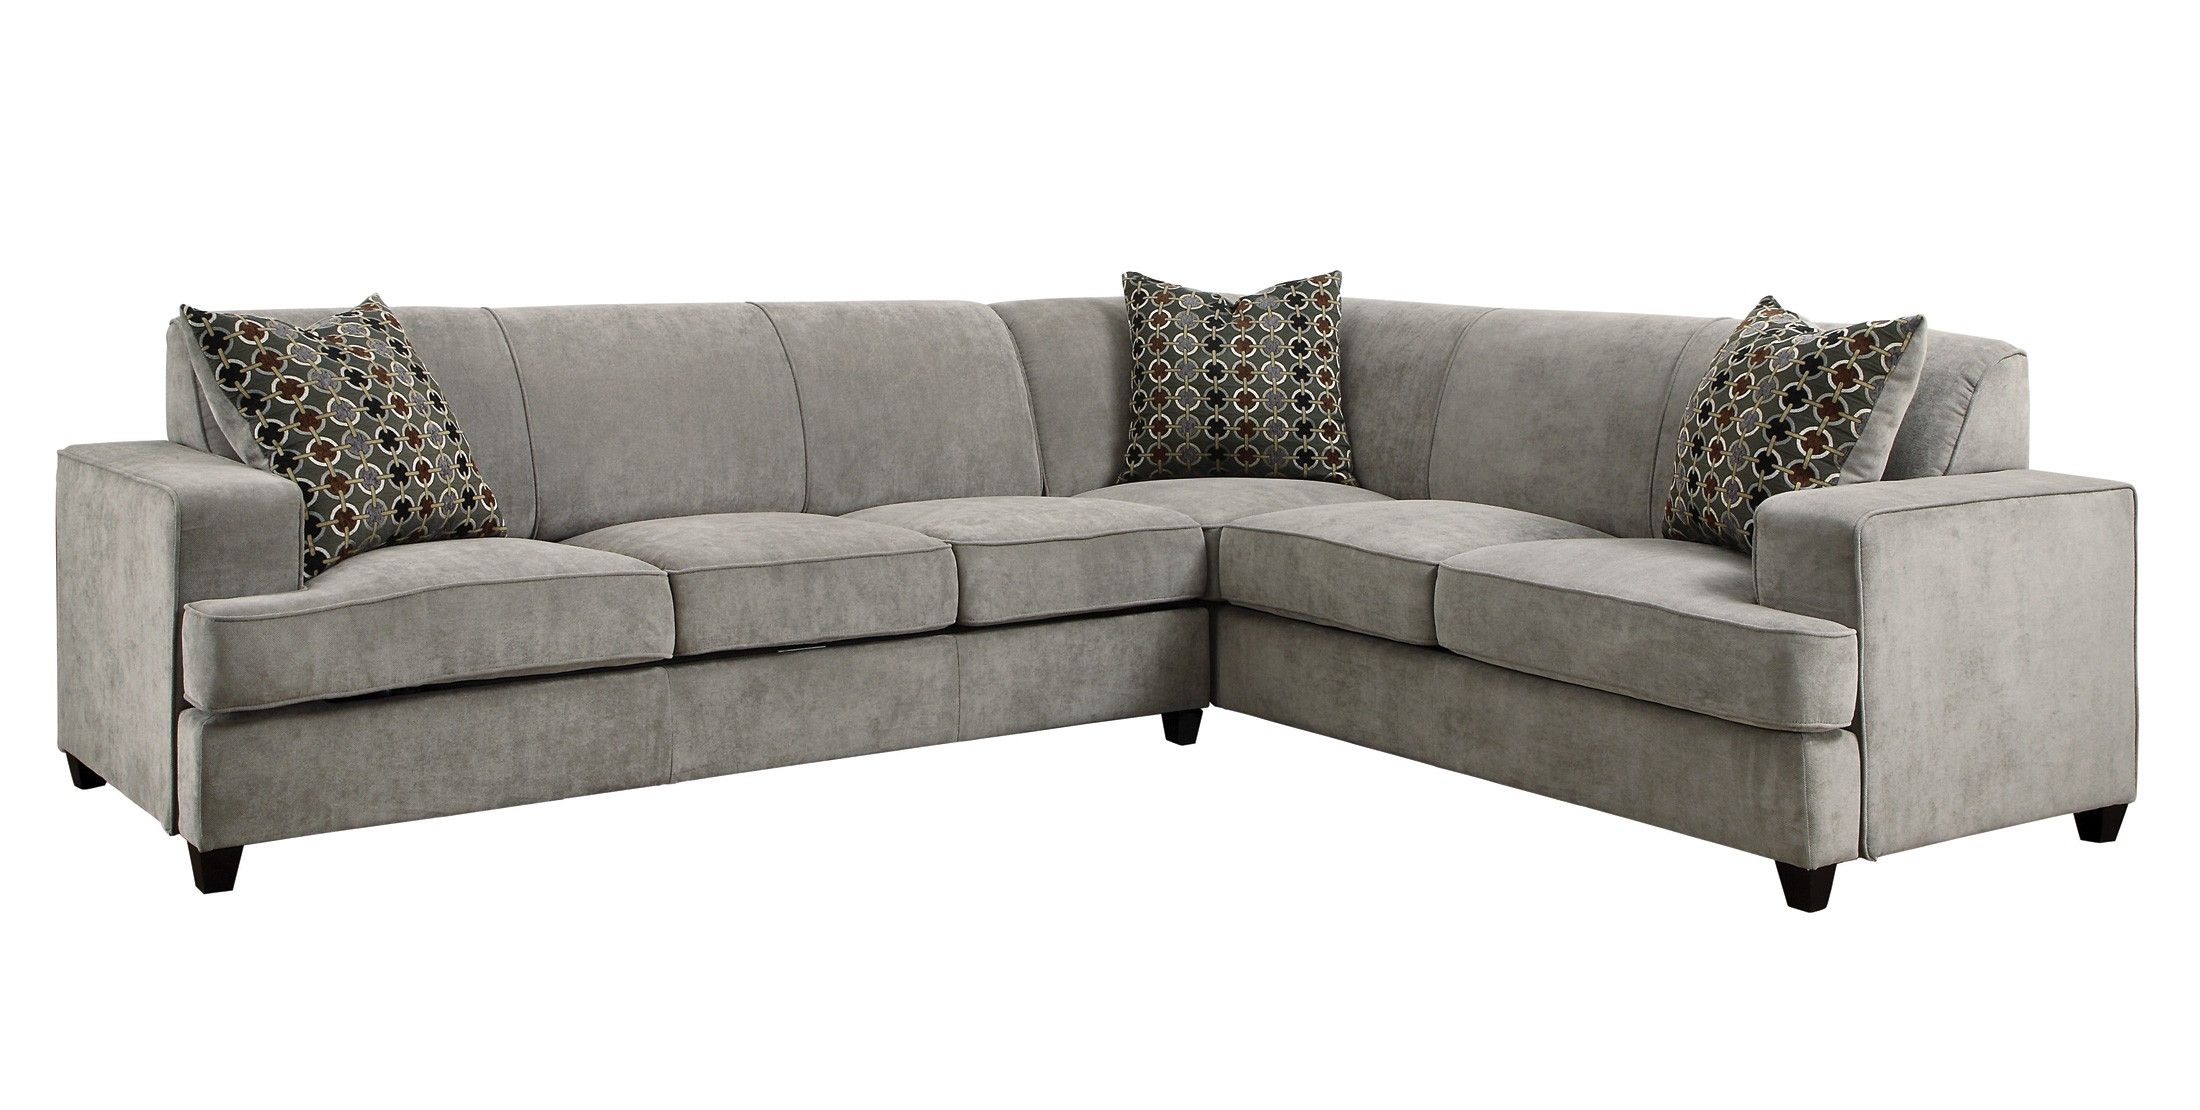 Best Coaster 500727B1 500727B2 500727B3 Sectional Sofas 400 x 300